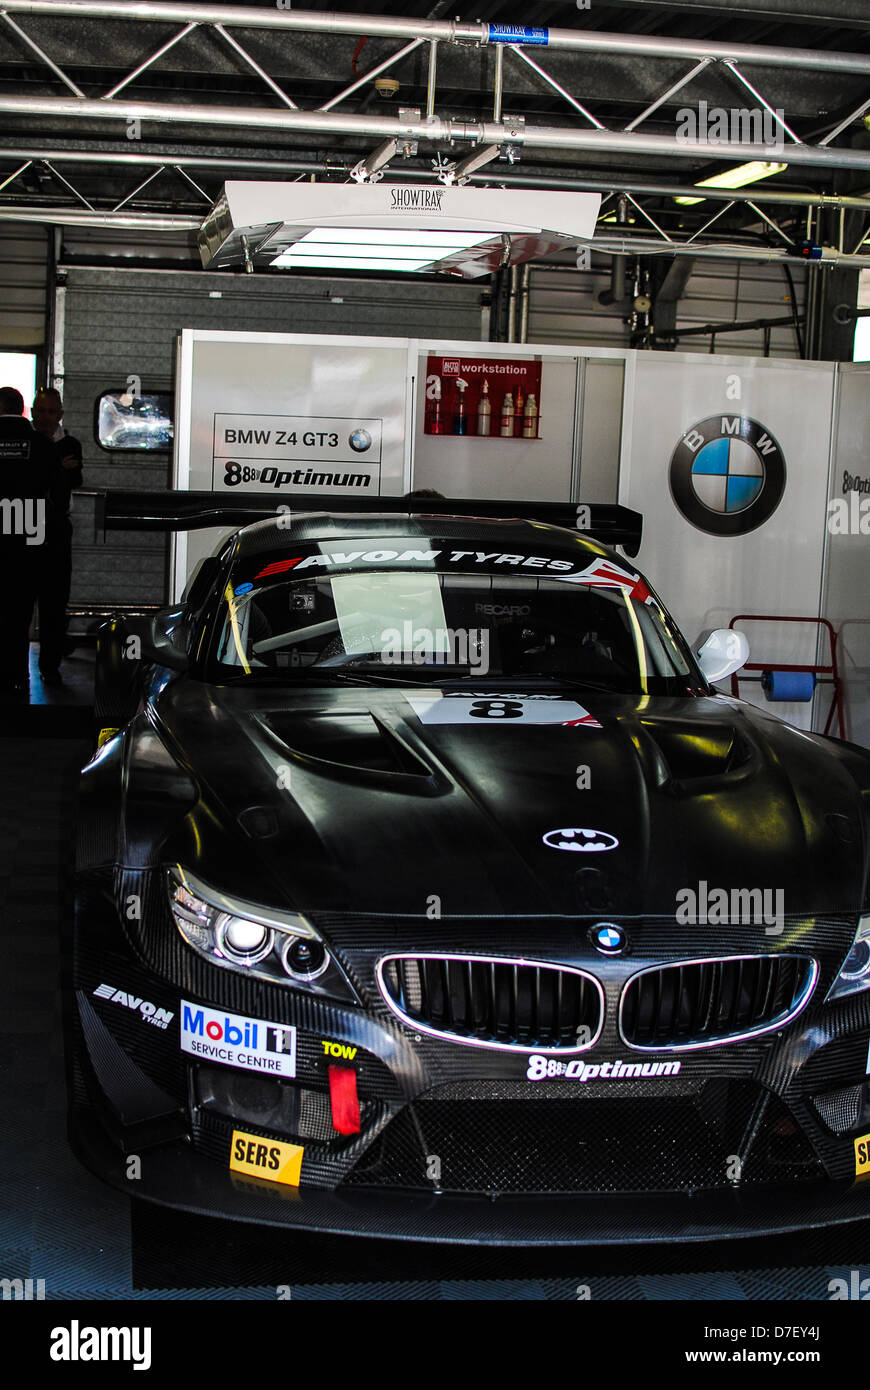 Bmw racing car british gt pit garage stock photo royalty for Garage bmw corbeil essonnes